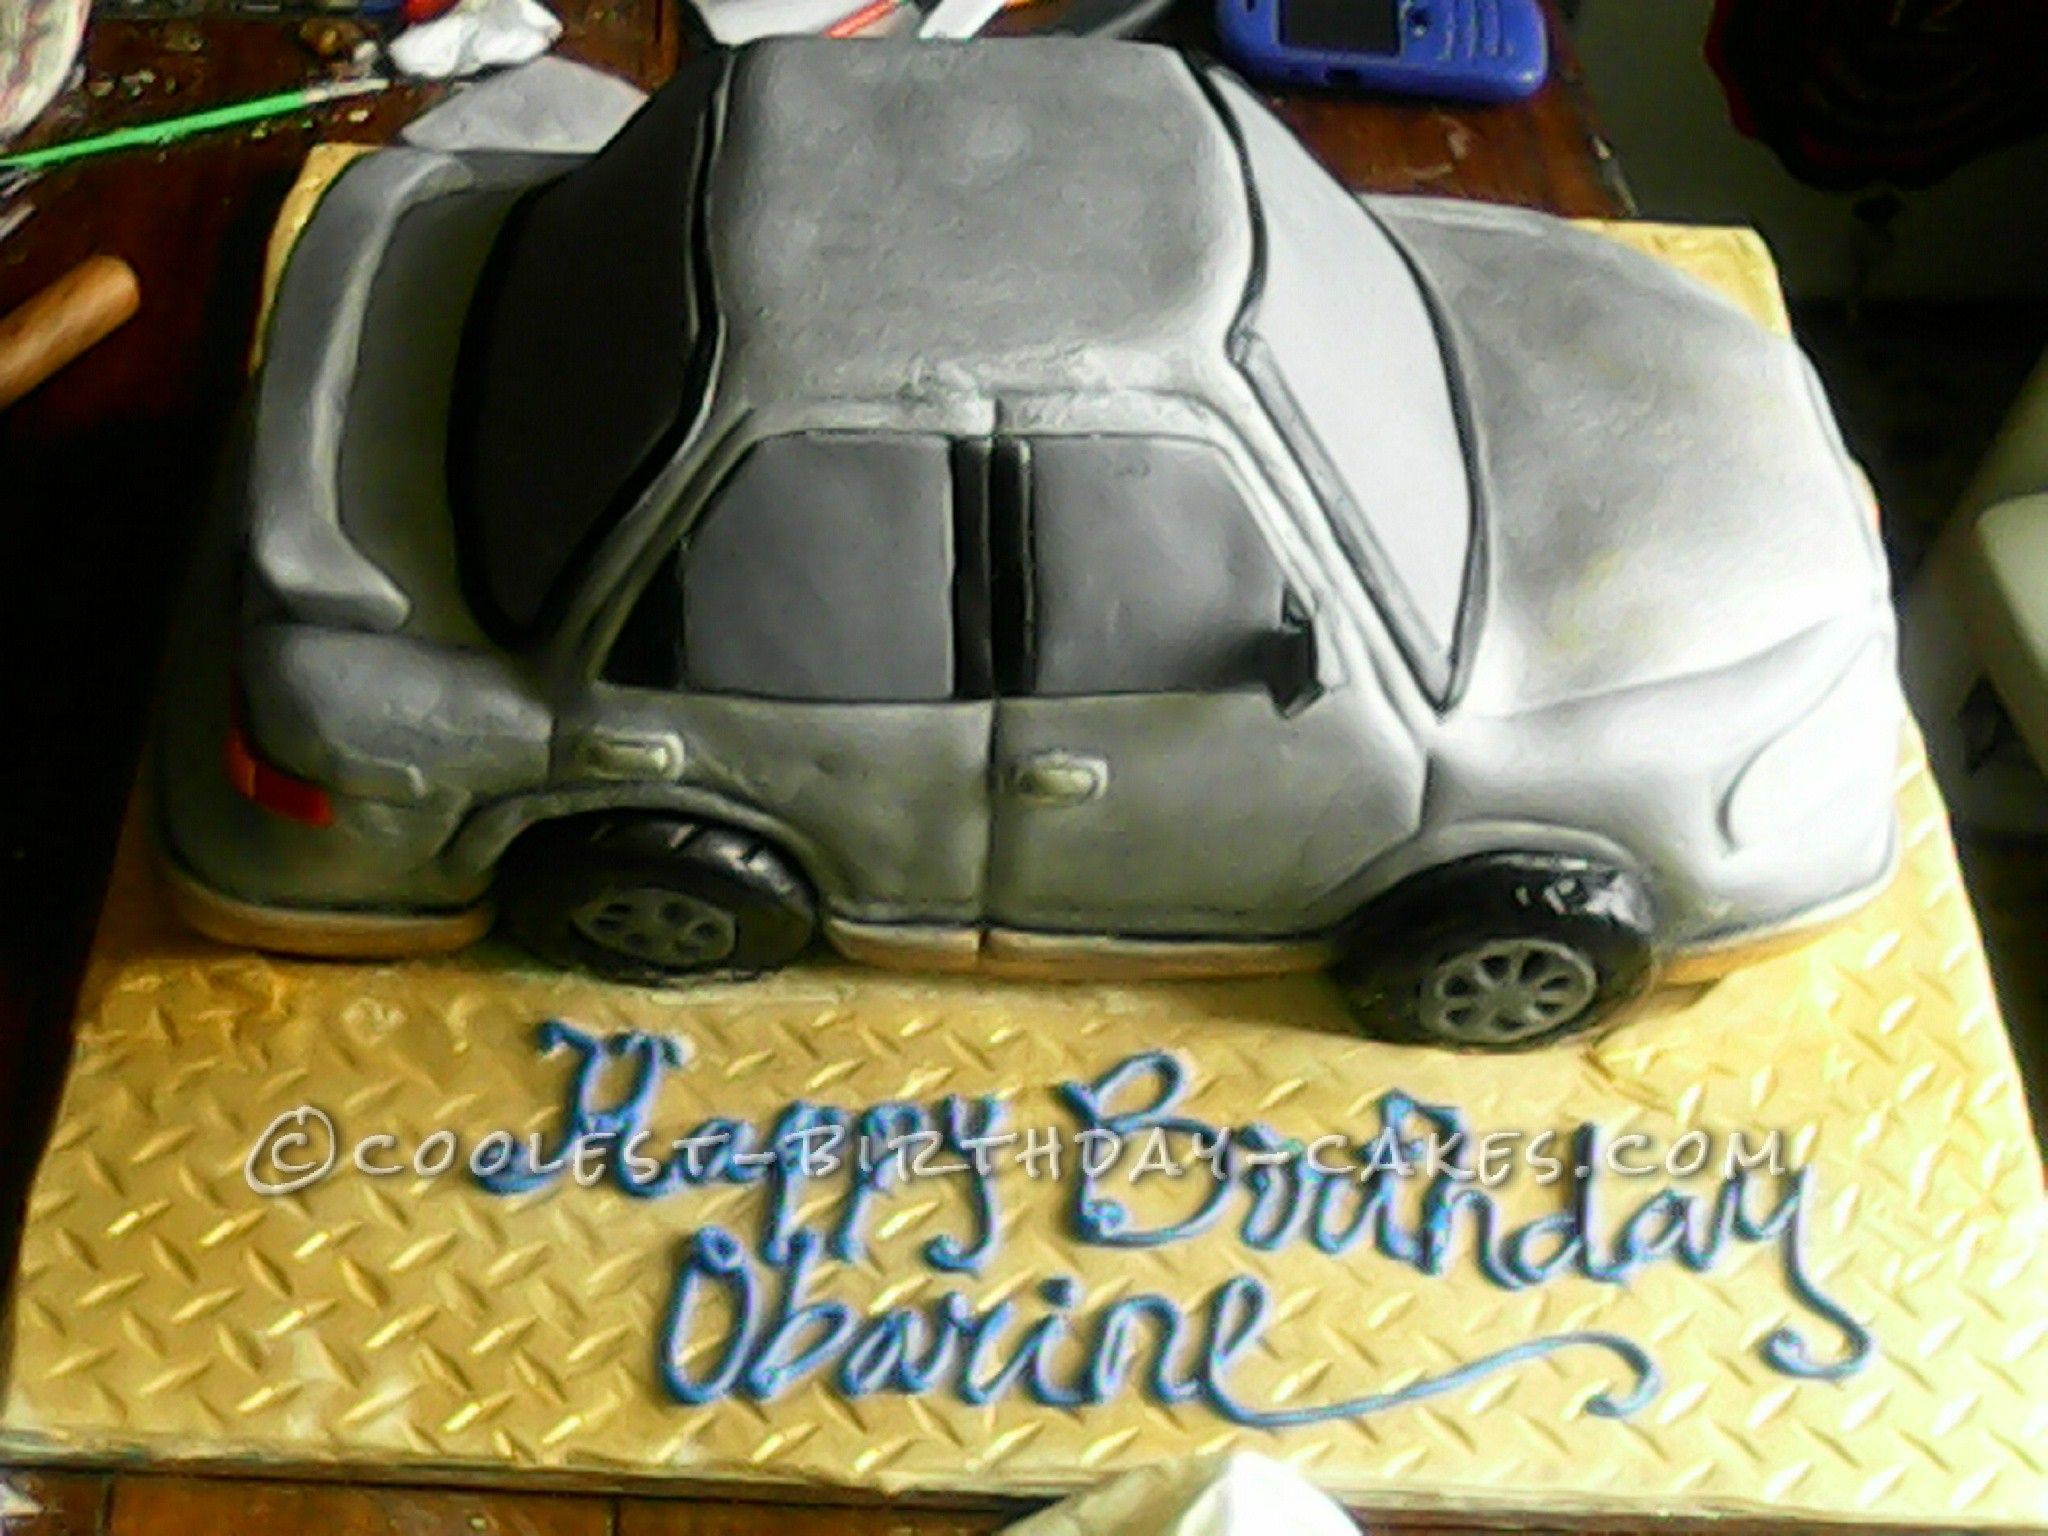 Coolest Camry Birthdy Cake For 10 Year Old This Website Is The Pinterest Of Birthday Ideas